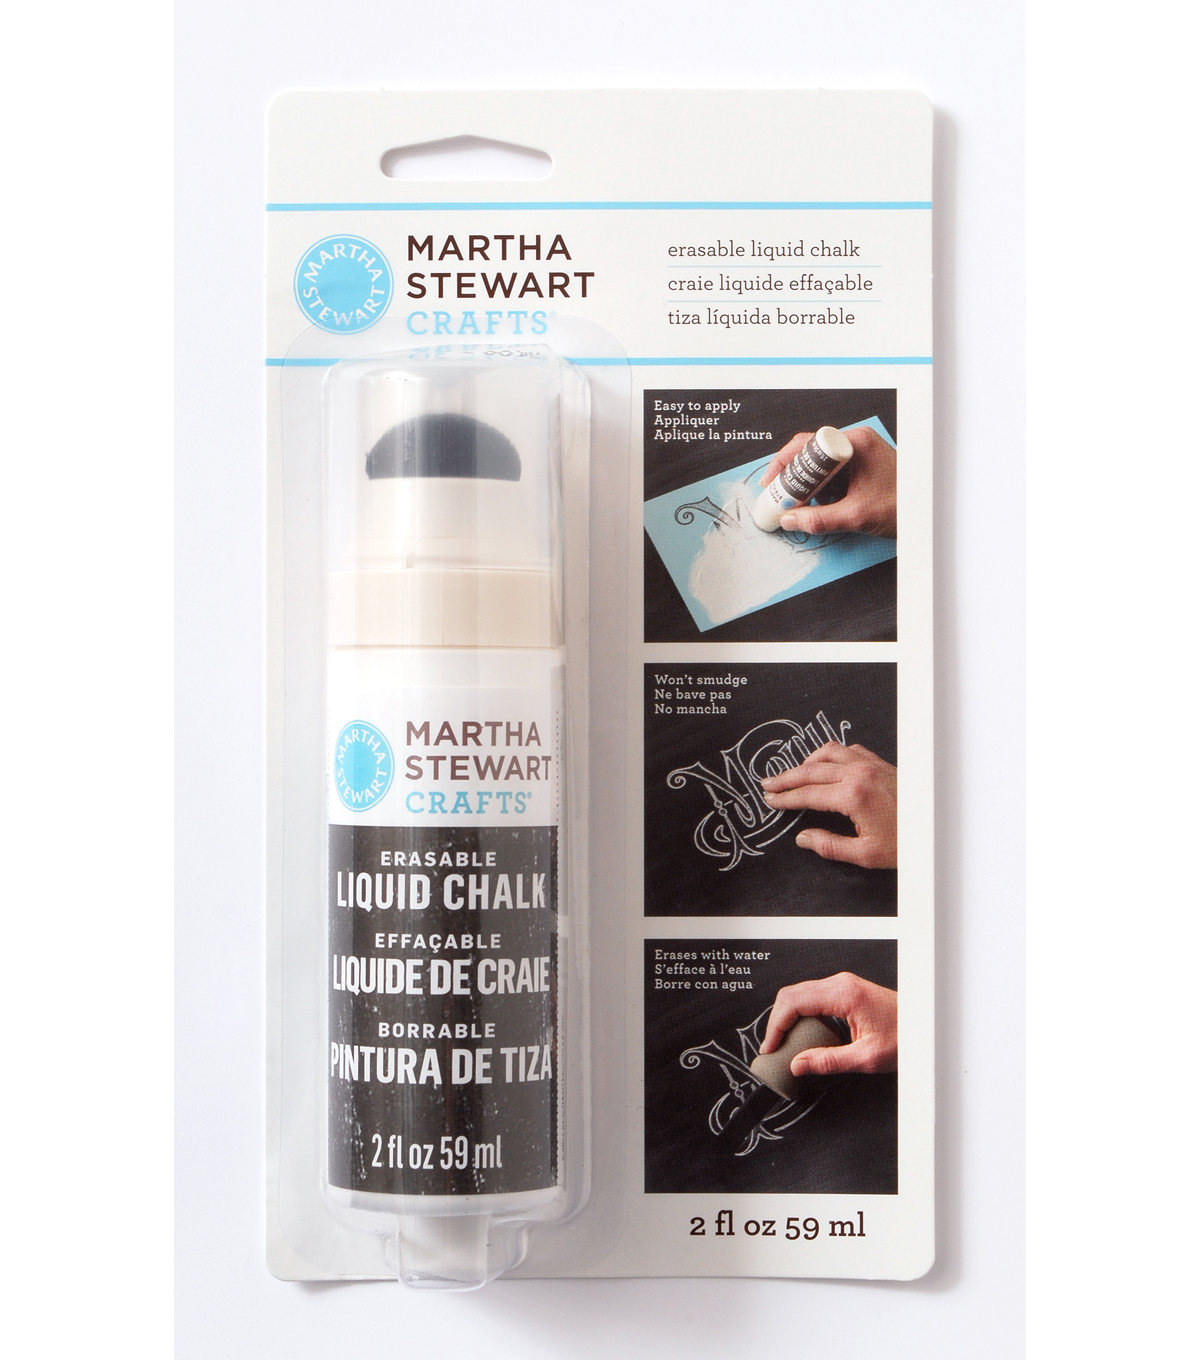 Martha Stewart Crafts ® 2oz Erasable Liquid Chalk - White